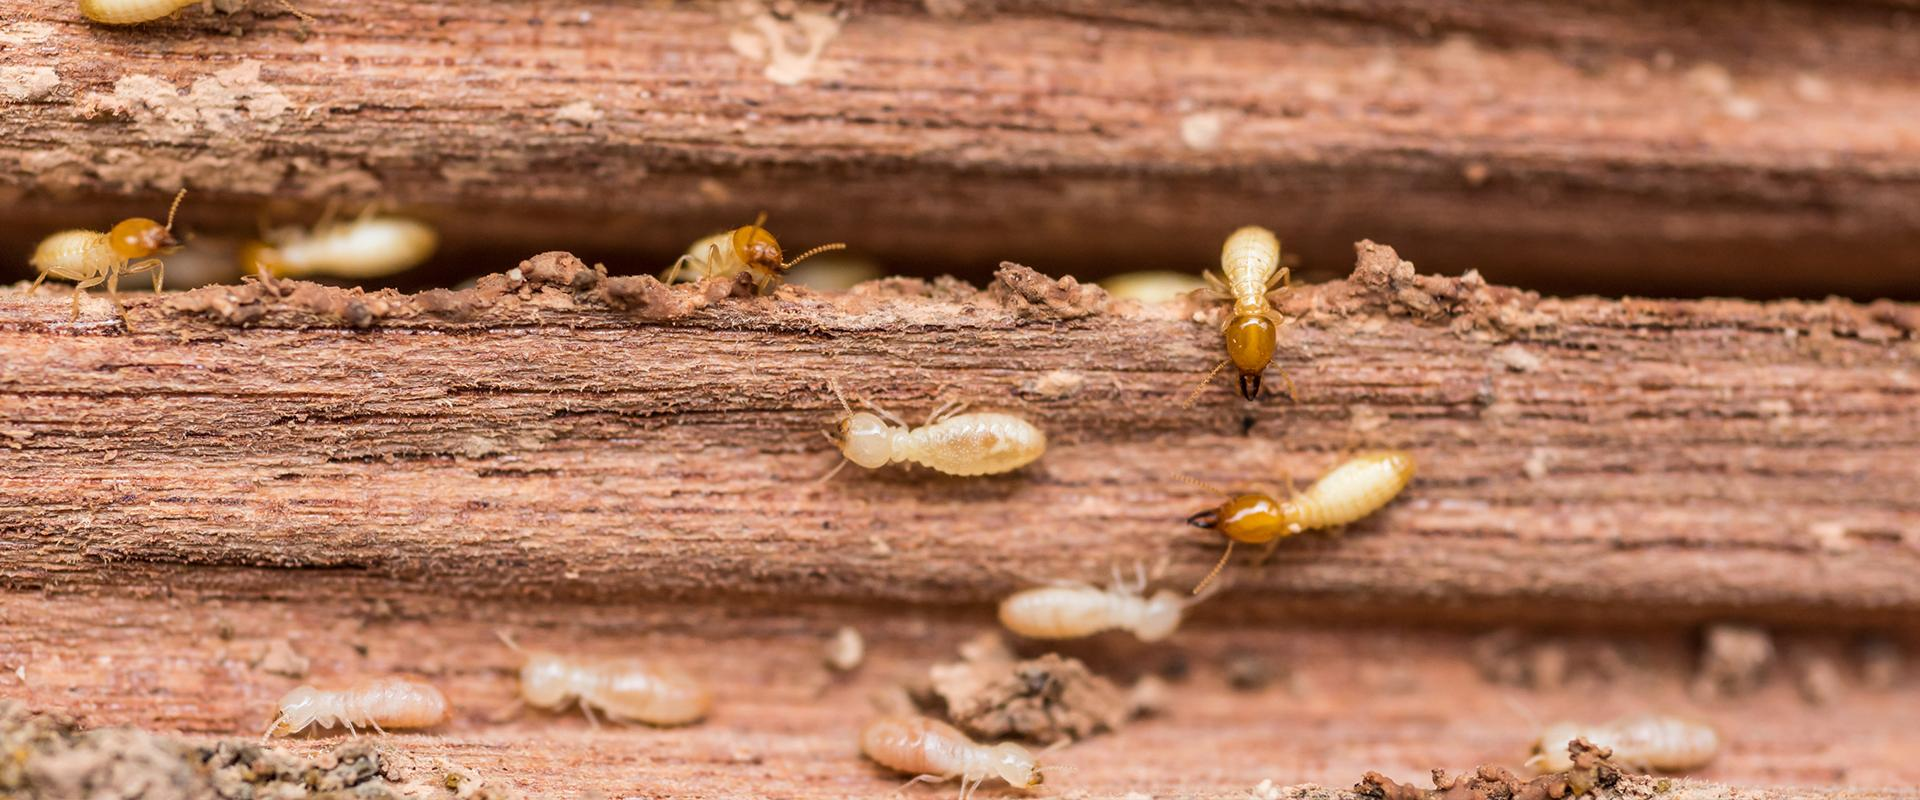 termites in a wood plank